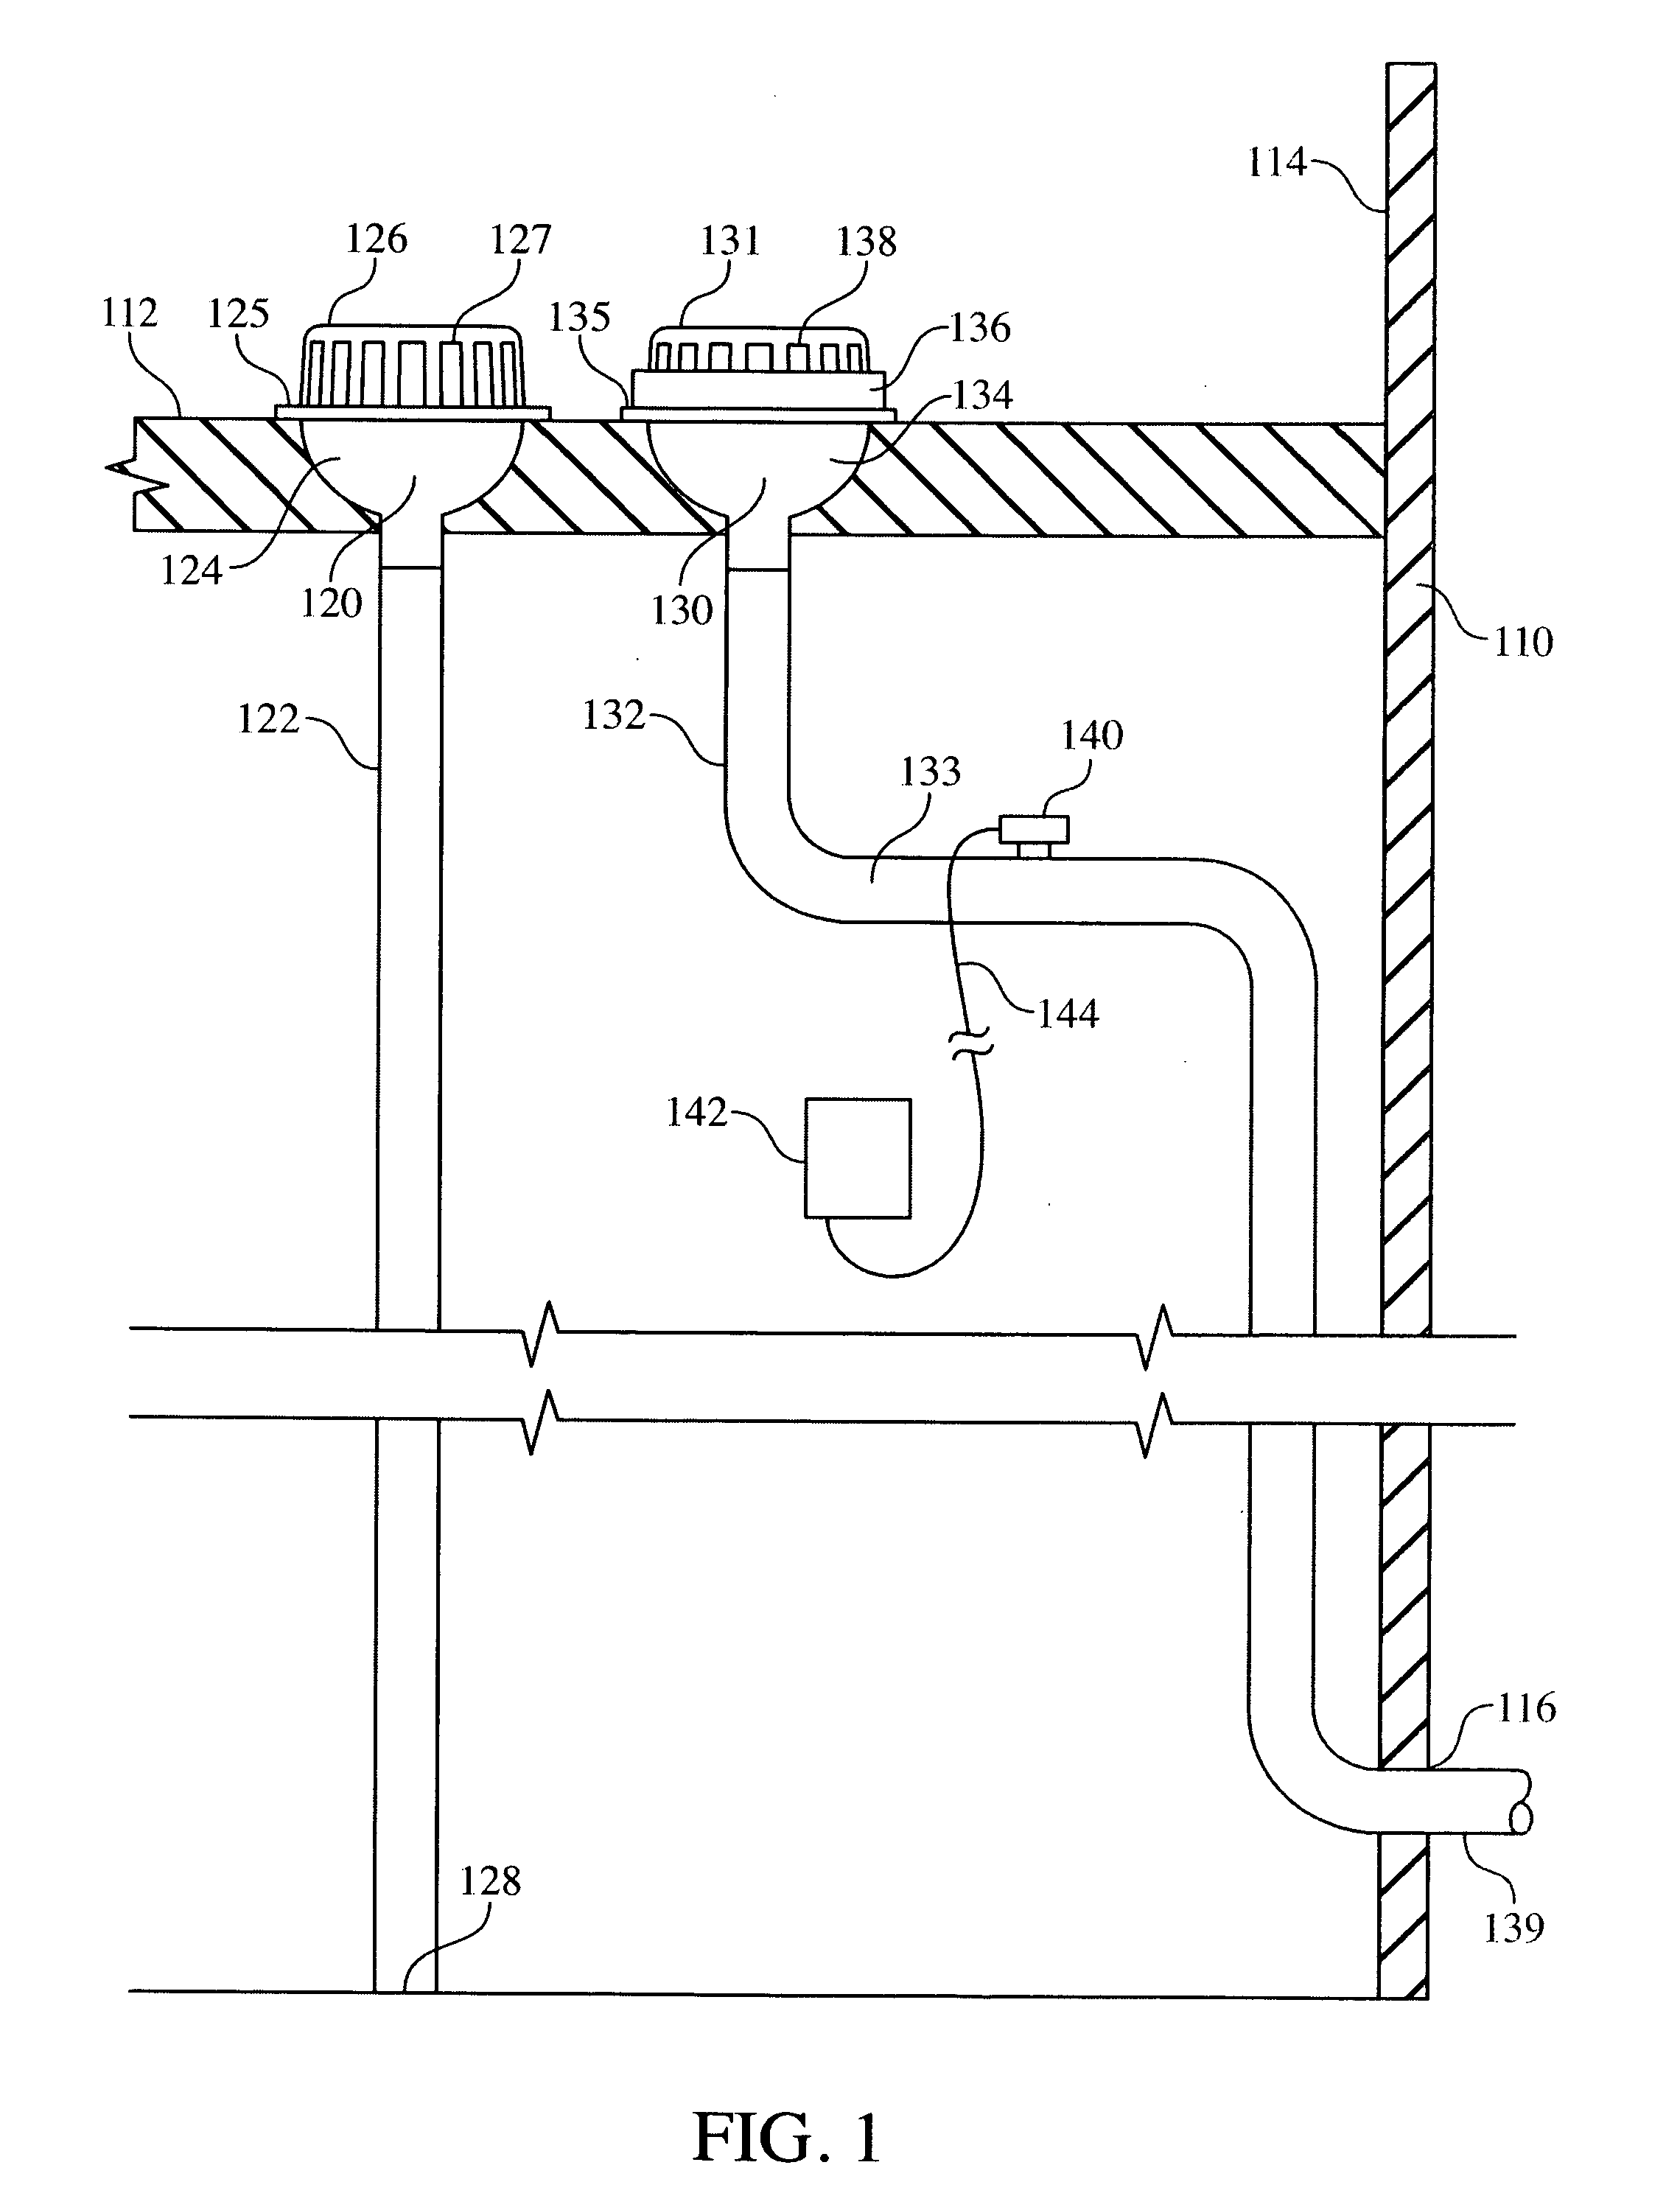 Emergency Roof Drain Storage Tank Patent Us4134515